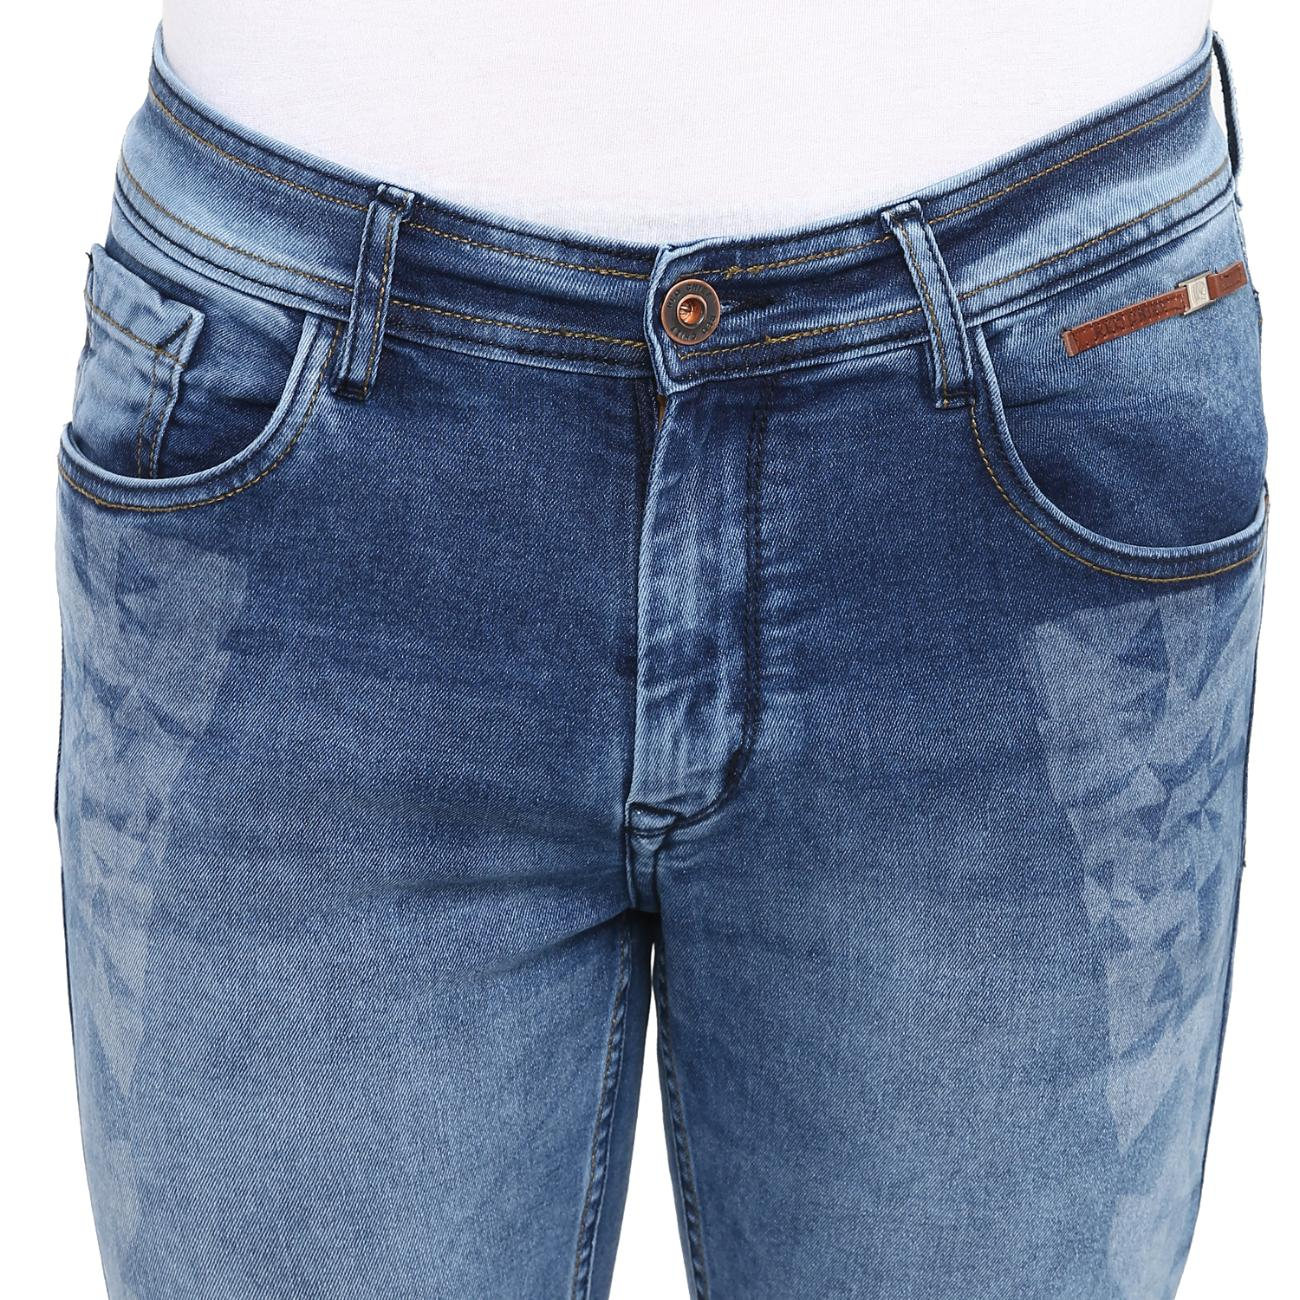 Shop Red Chief Blue Denims for Men